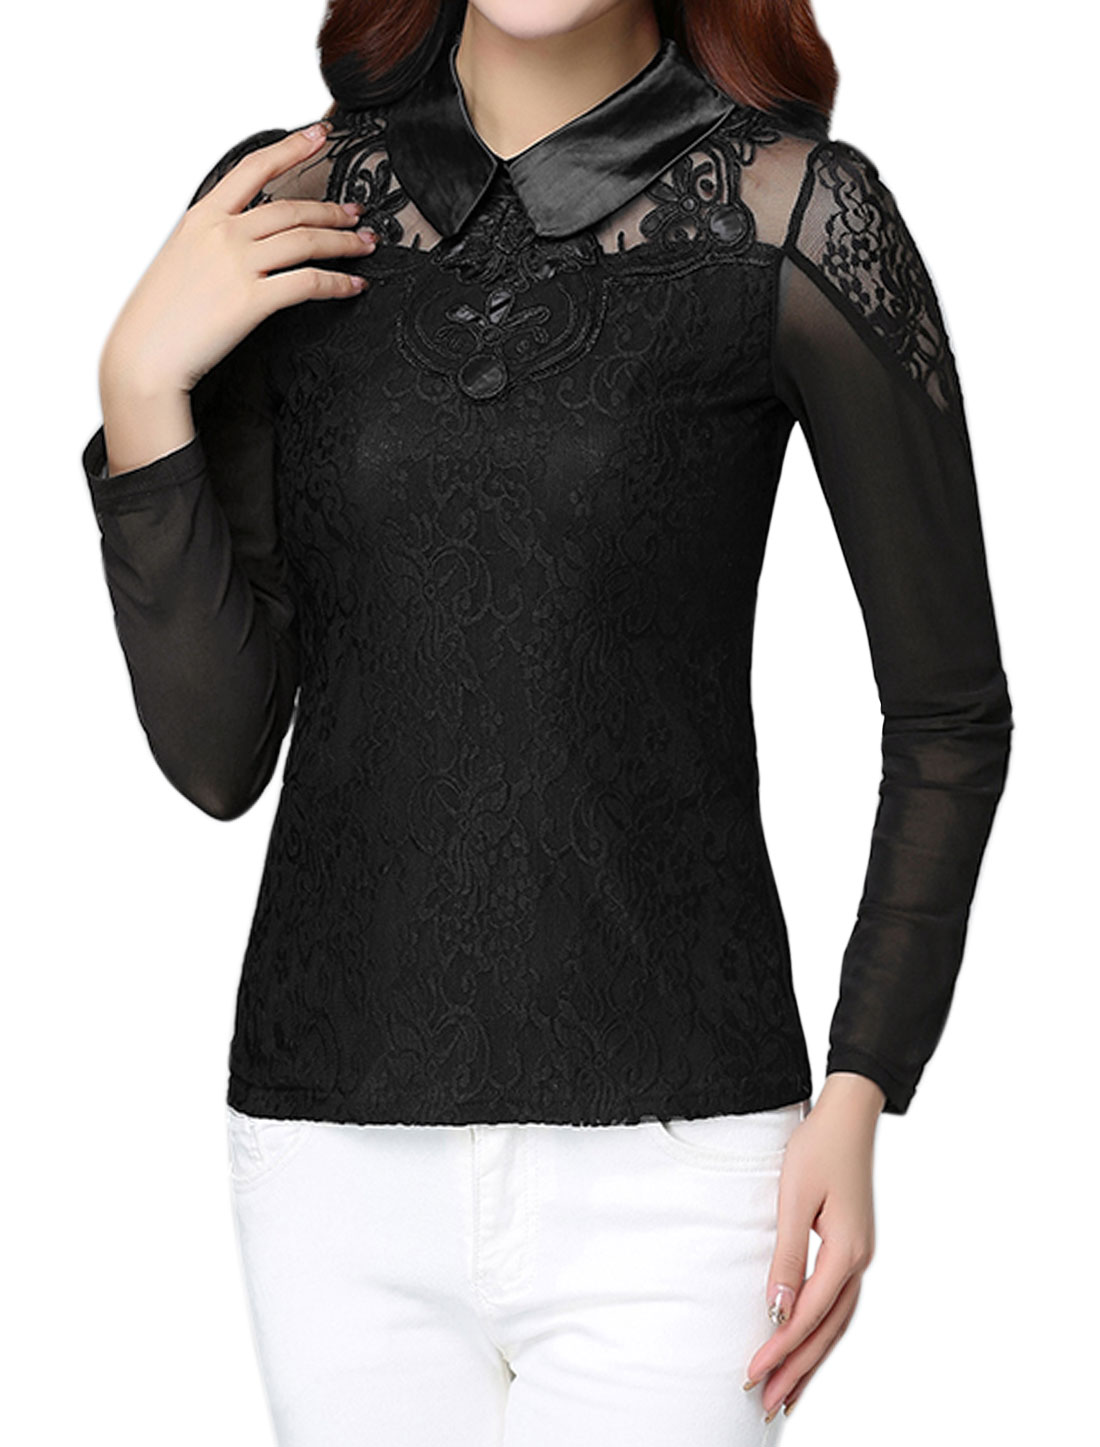 Women Collared Slim Fit Floral Lace Mesh Top Black S